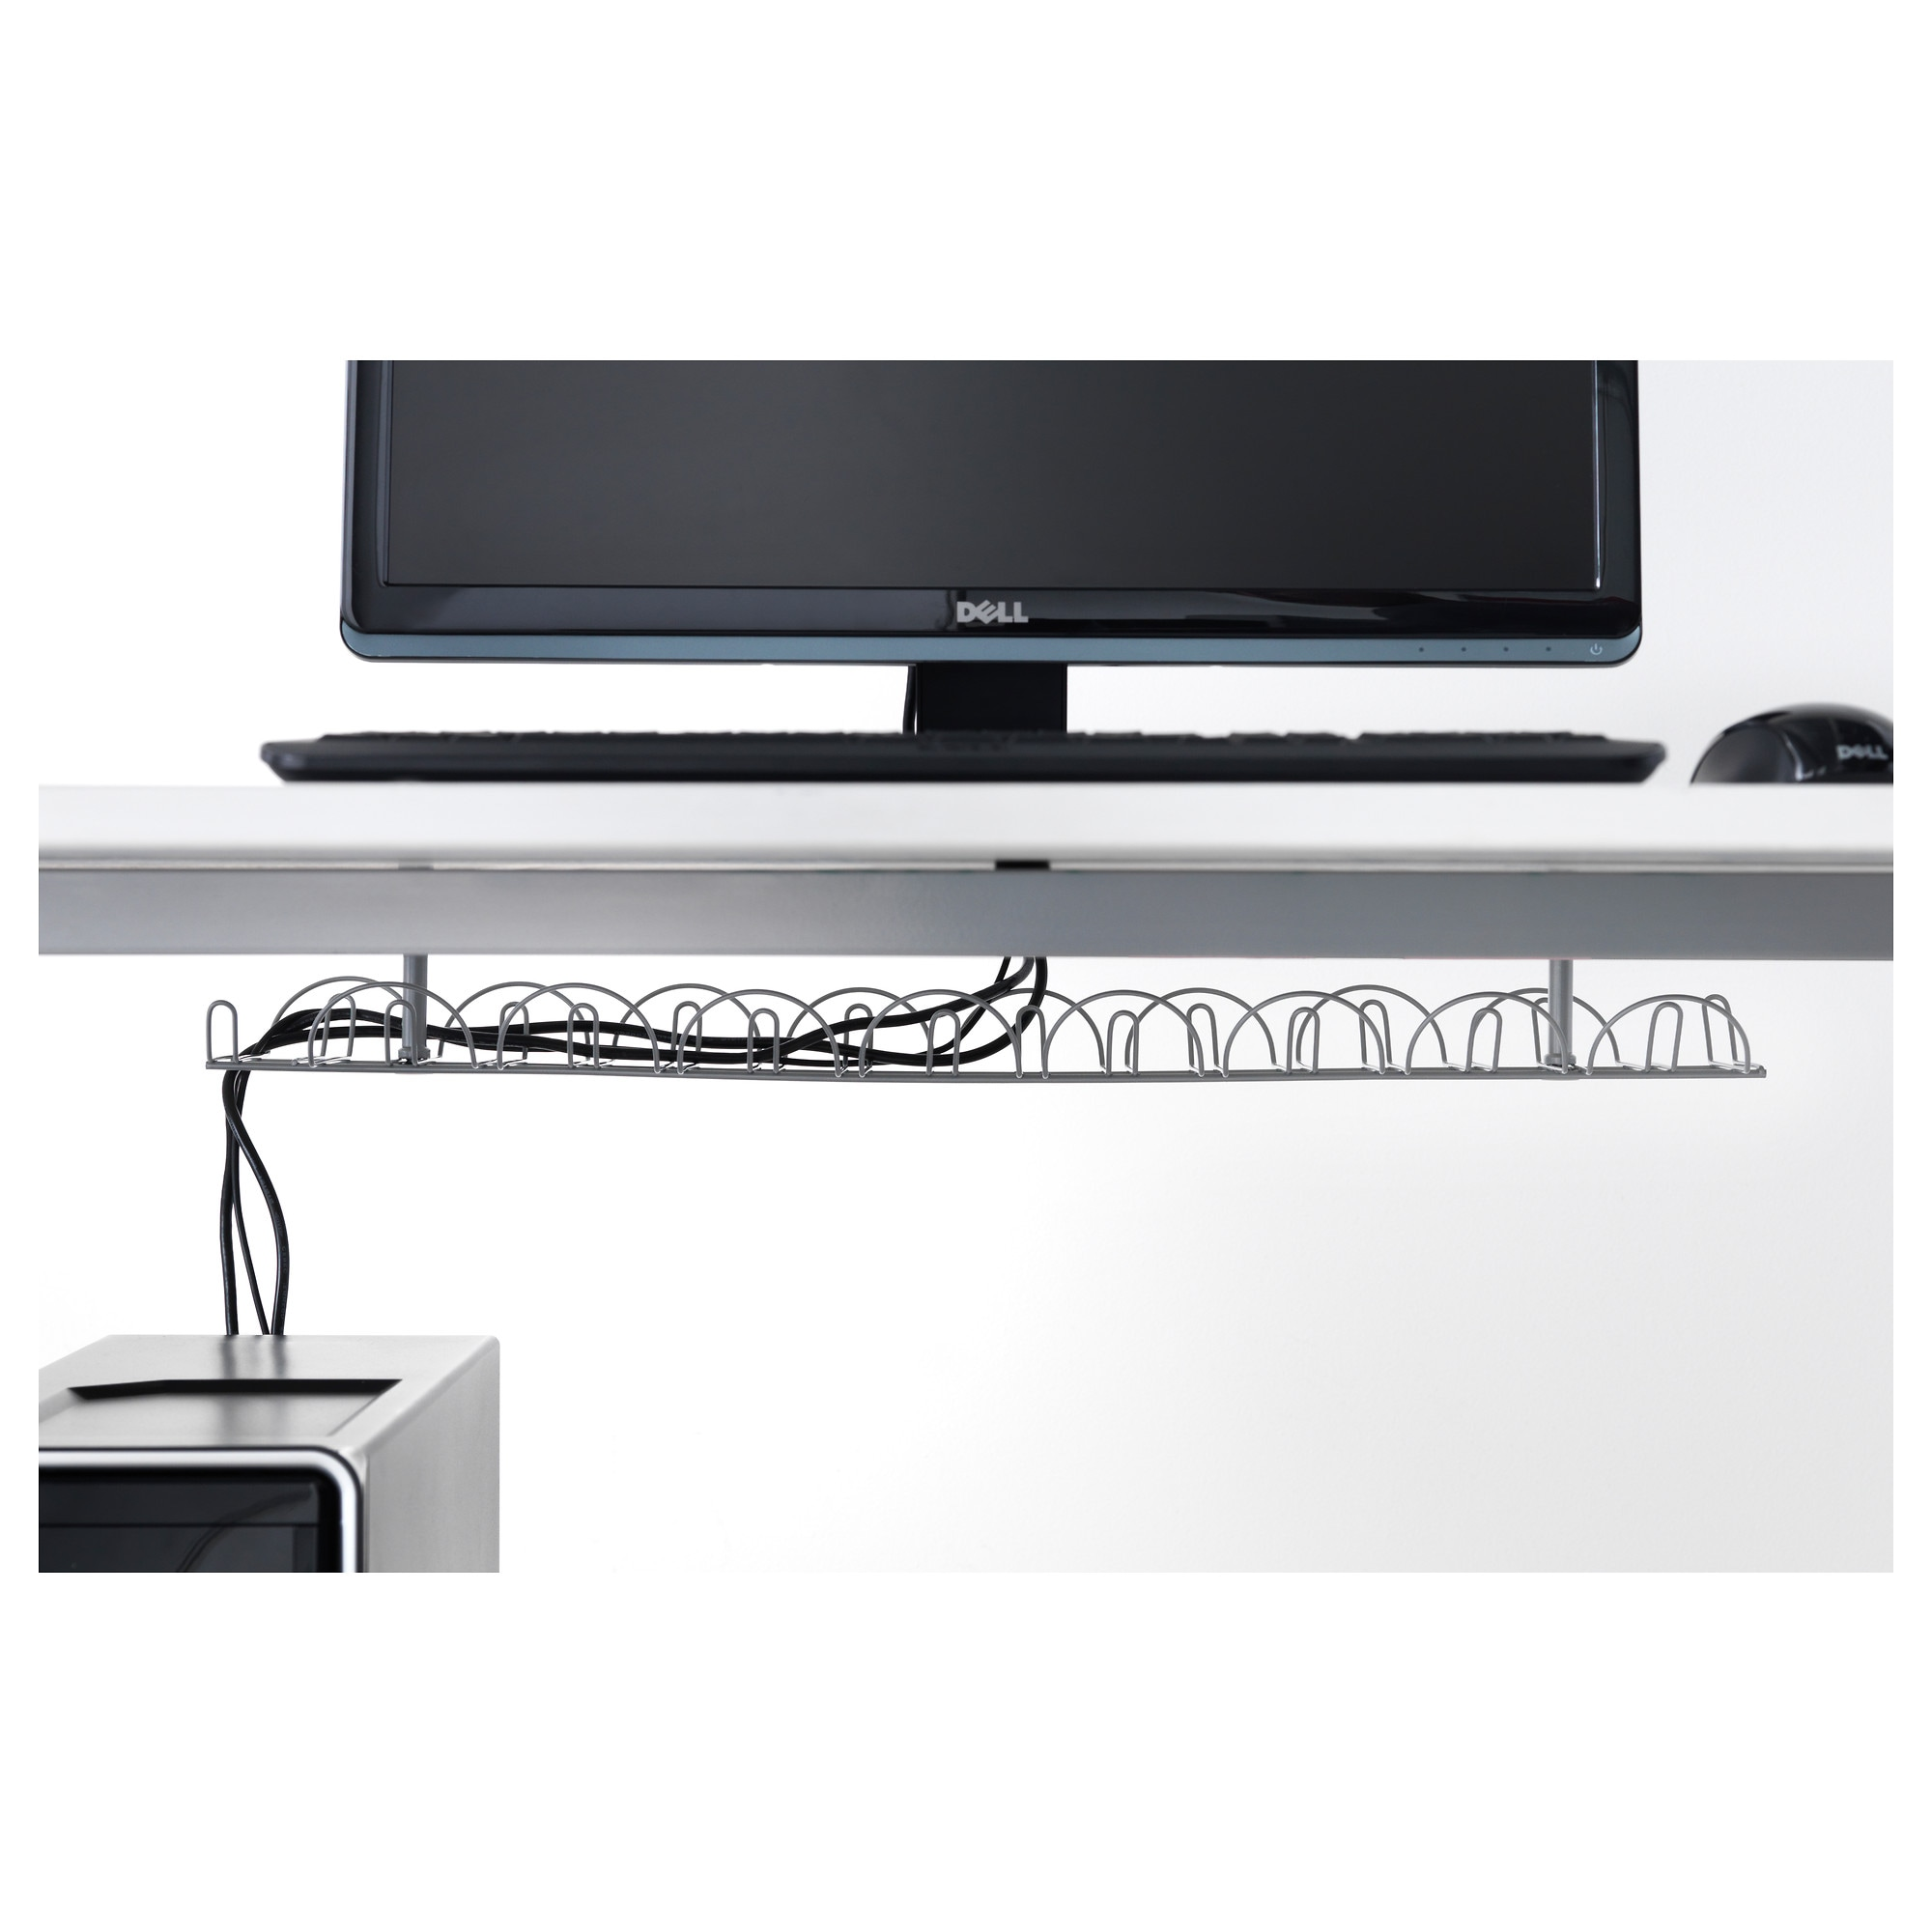 SIGNUM Cable management, horizontal - IKEA